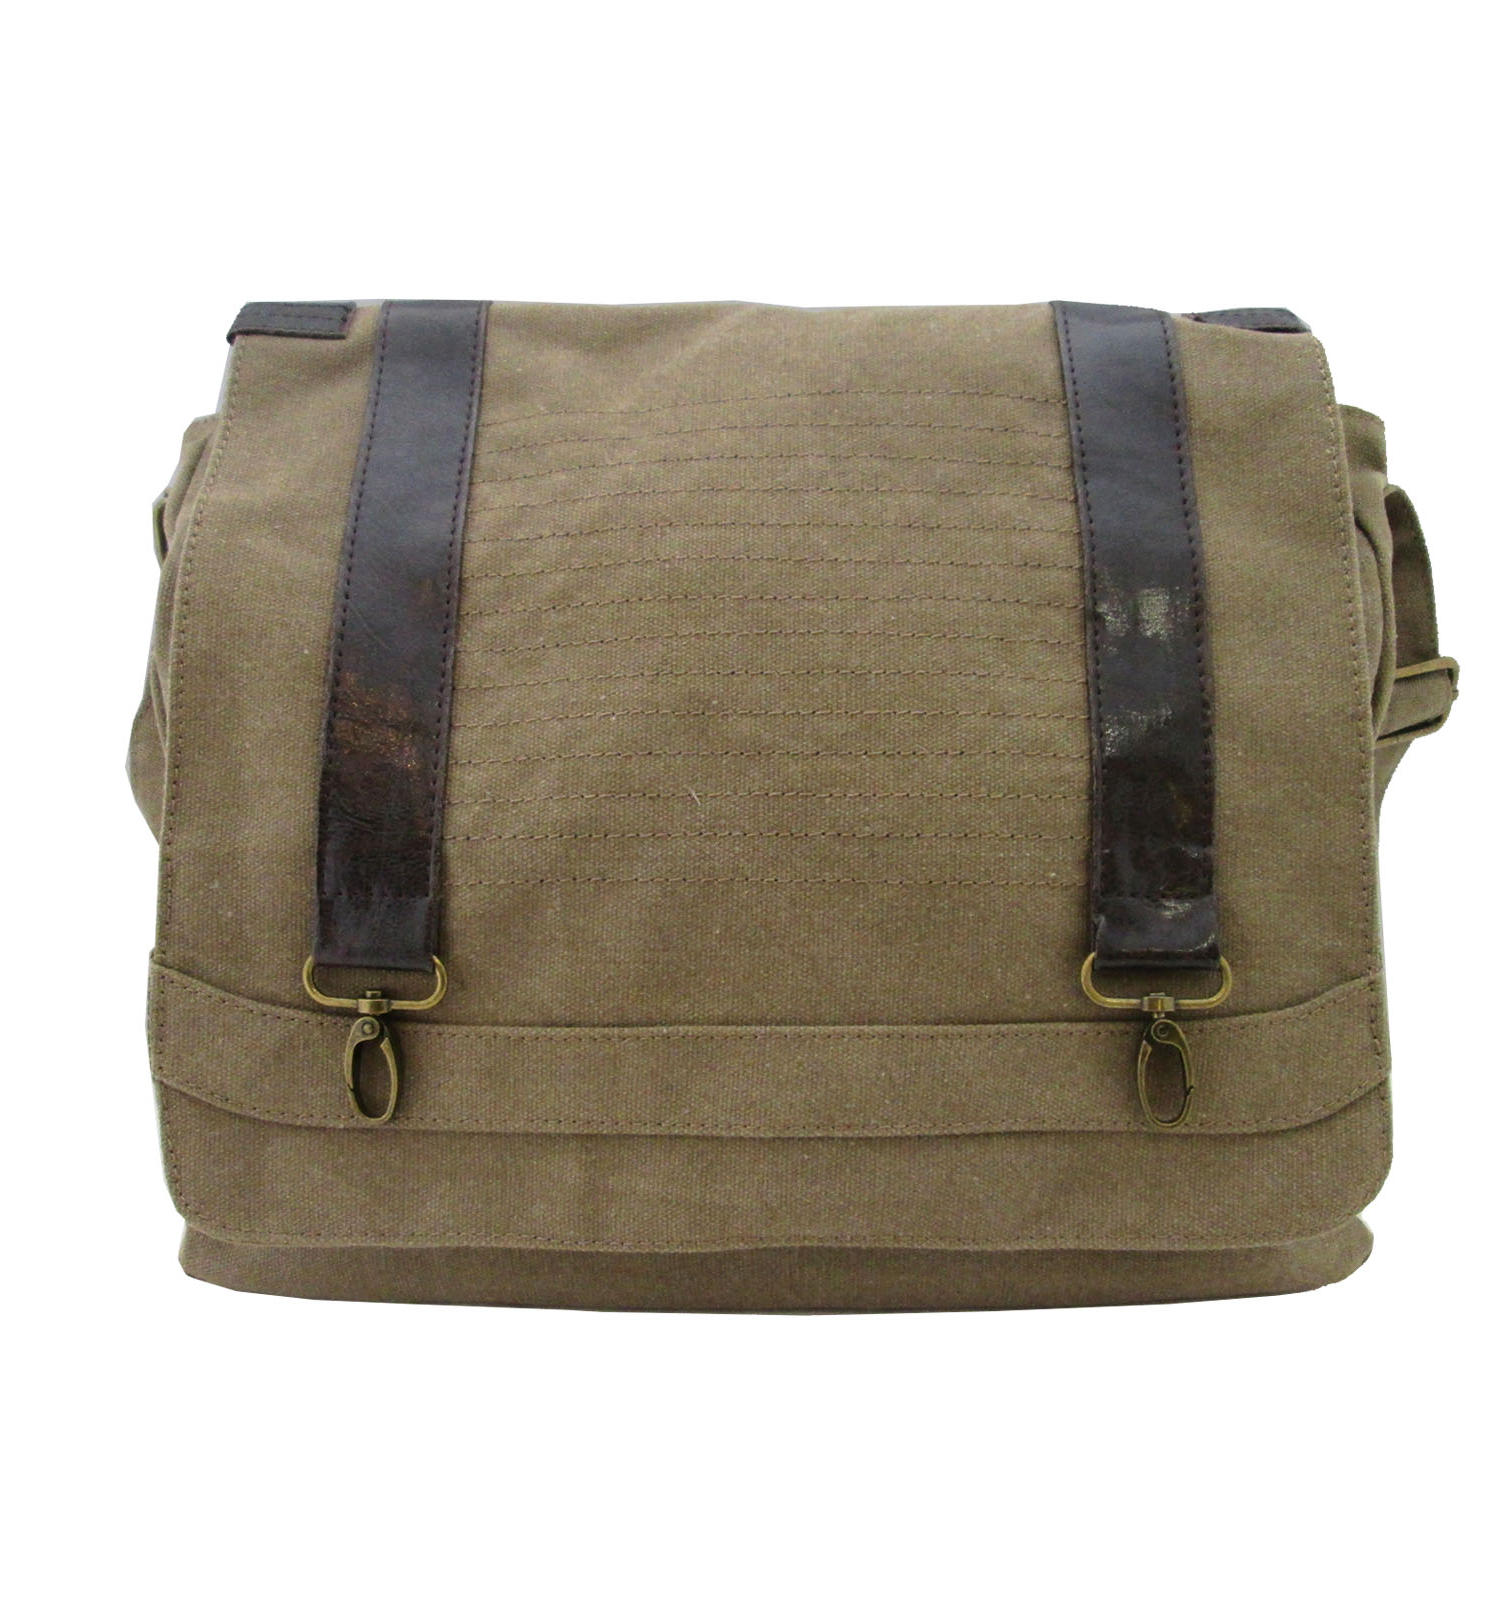 Olivia Miller Canvas Messenger Bag